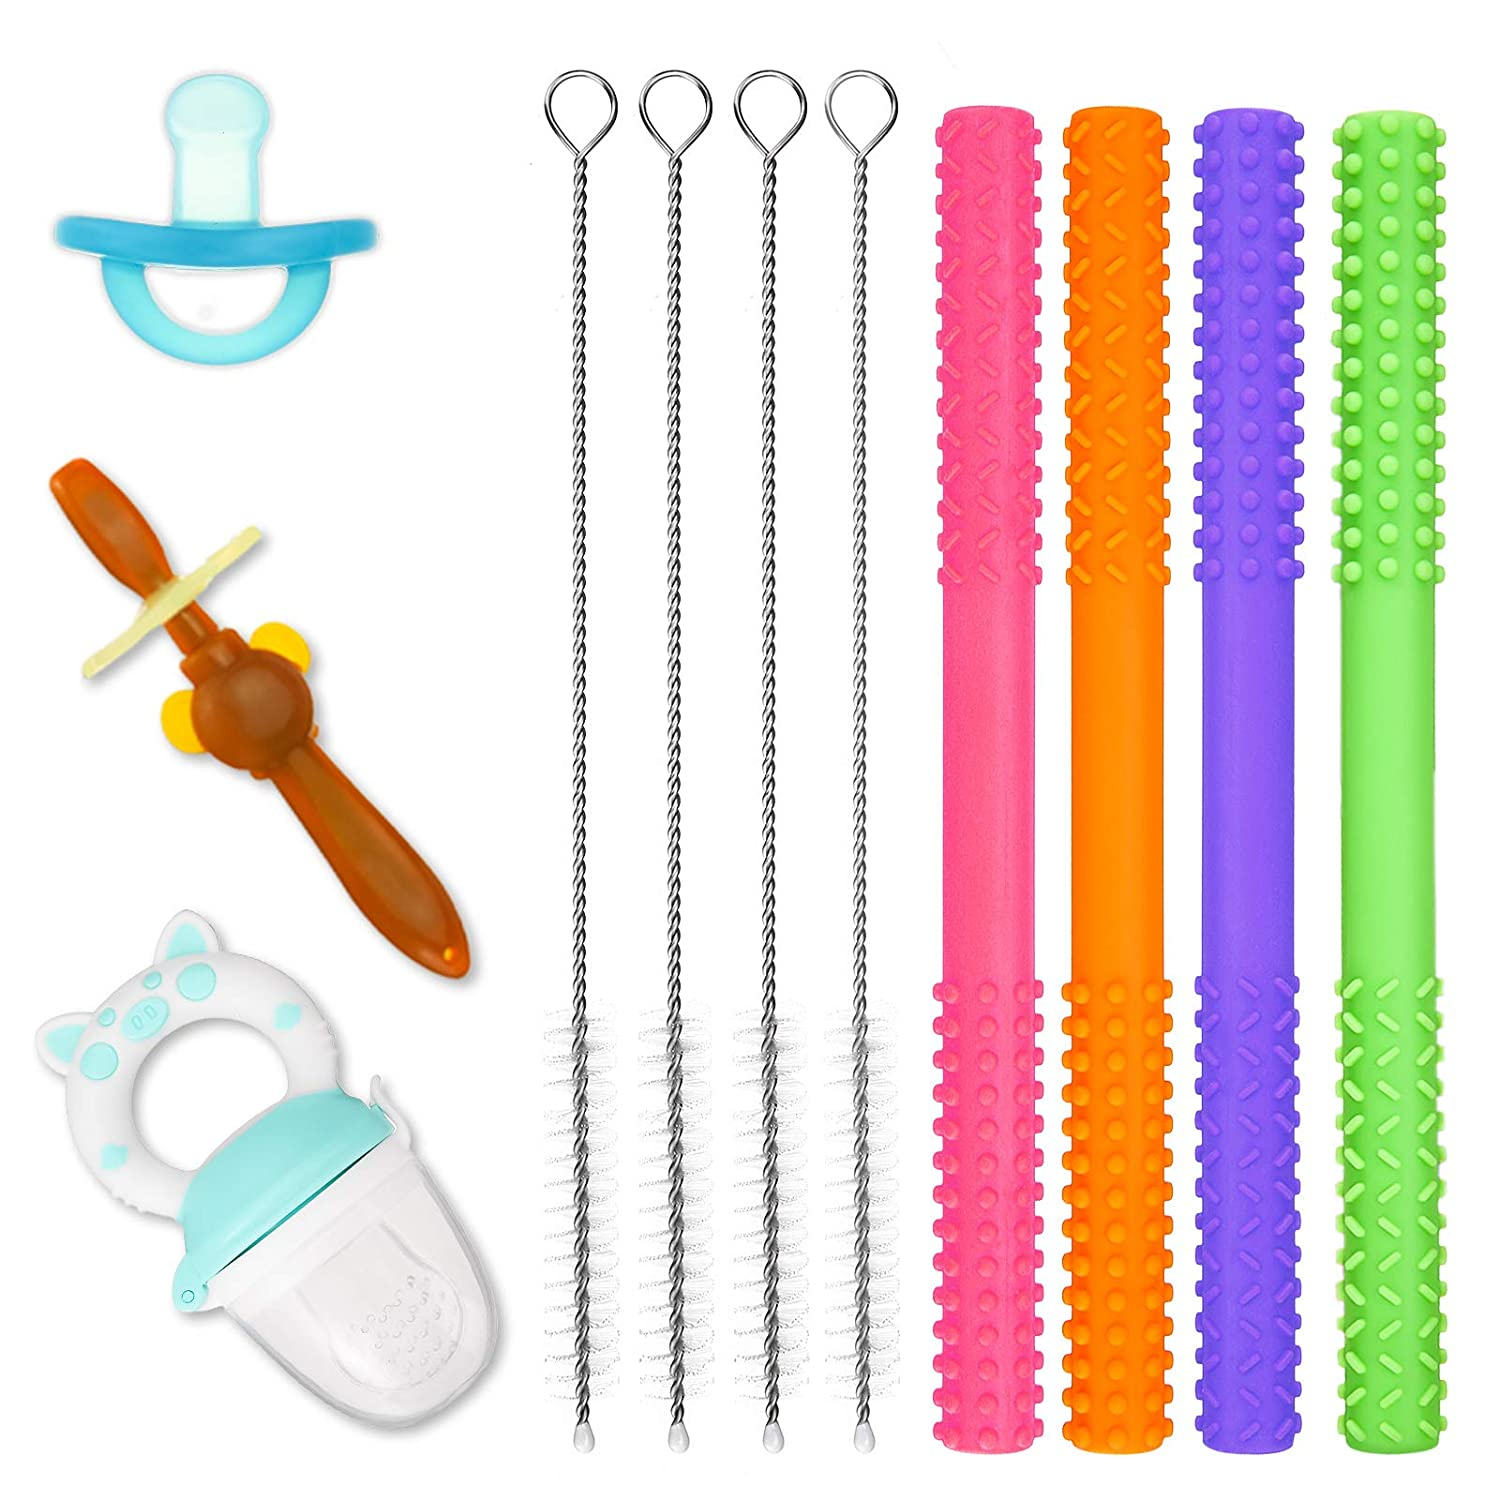 CHARMINER Teething Tubes, Baby Toddler Teethers, Baby Food Feeder, Baby Toothbrush, 7 Pack Silicone Teether Tubes for Babies with 4 Cleaning Brush